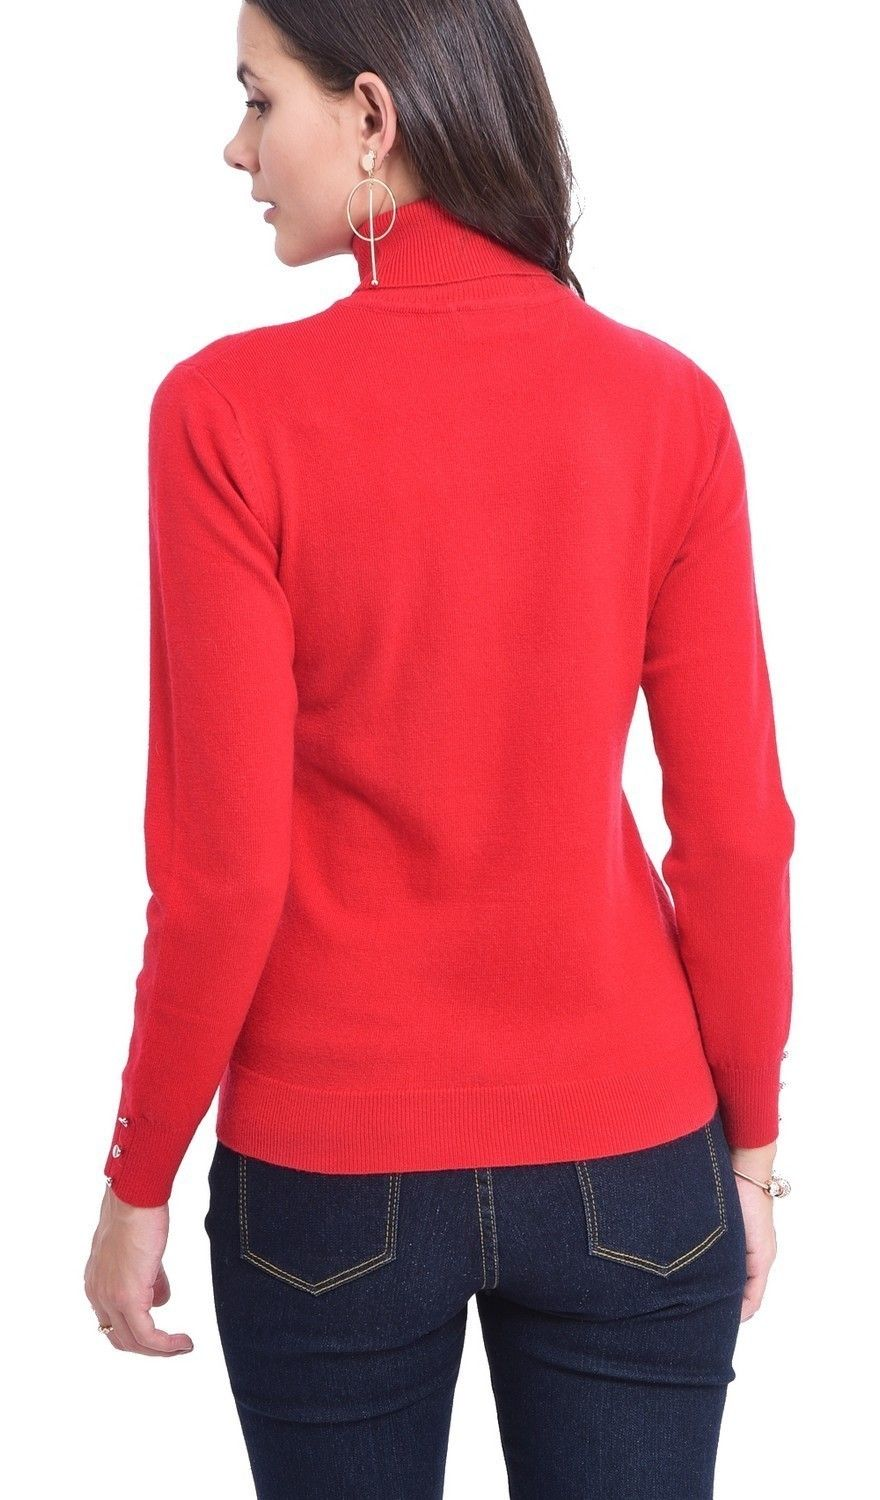 C&JO Turtleneck Sweater with Buttoned Sleeves in Red